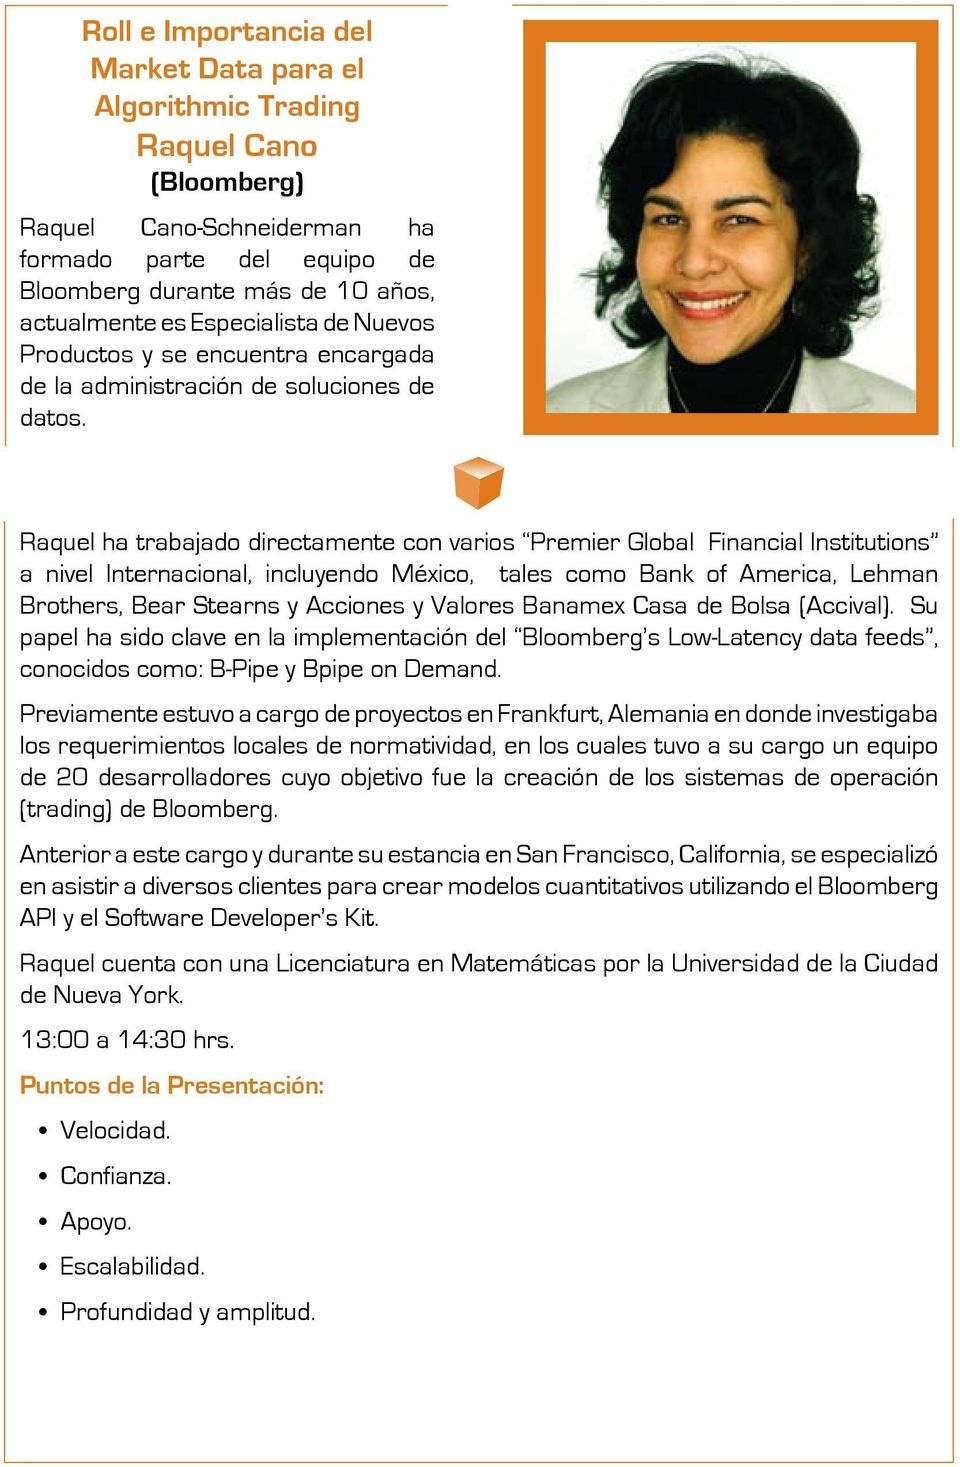 Raquel ha trabajado directamente con varios Premier Global Financial Institutions a nivel Internacional, incluyendo México, tales como Bank of America, Lehman Brothers, Bear Stearns y Acciones y